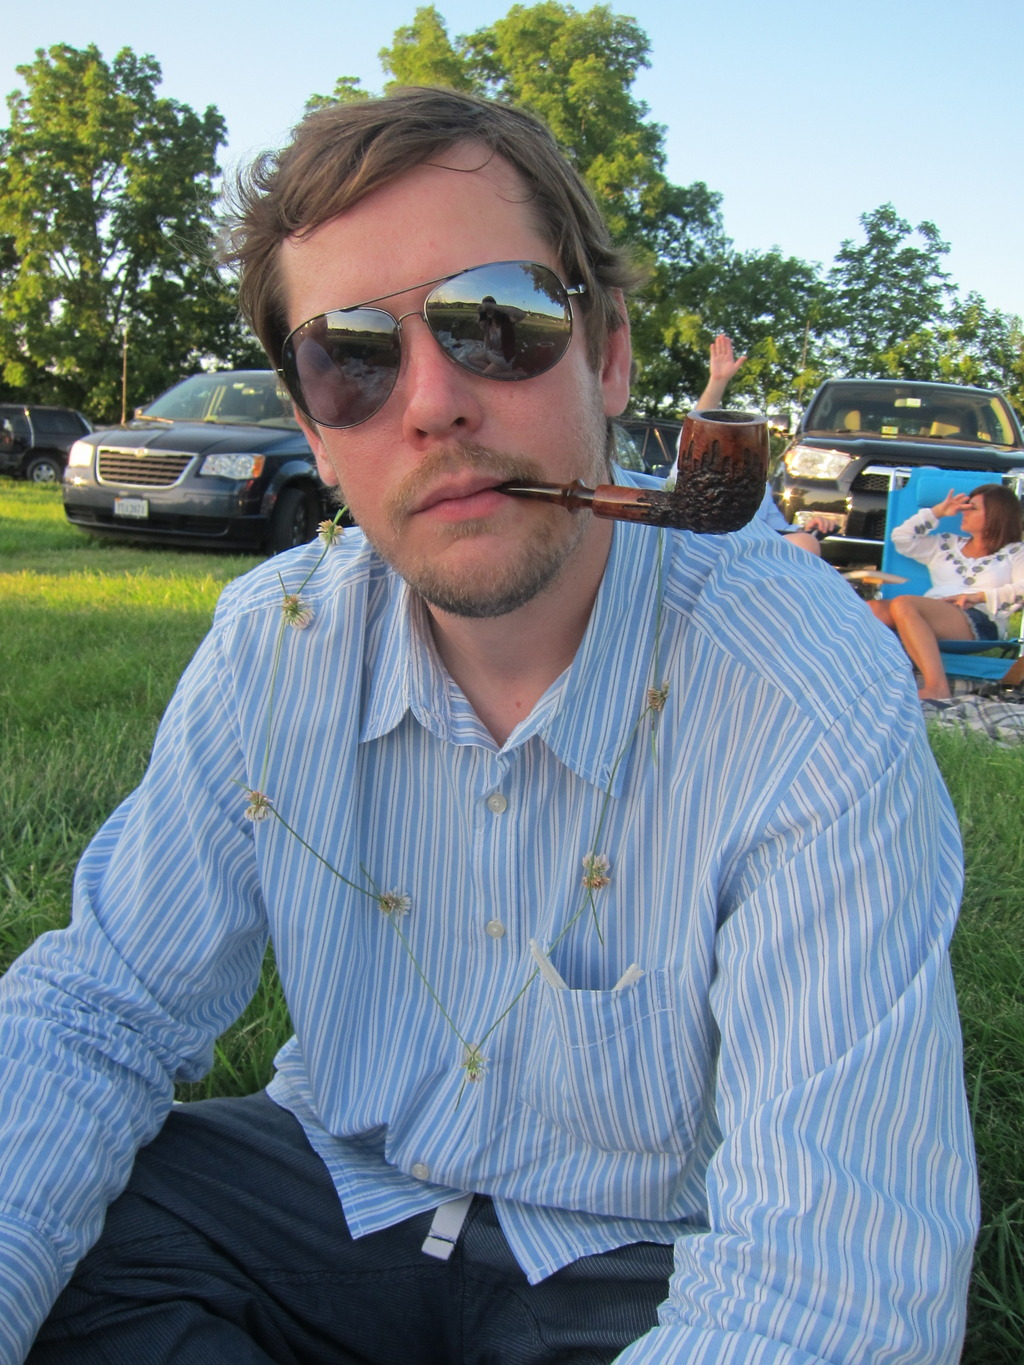 LET'S SEE PICS OF YOU SMOKING A PIPE - Page 6 MePipe1_zpstqrbkqyv